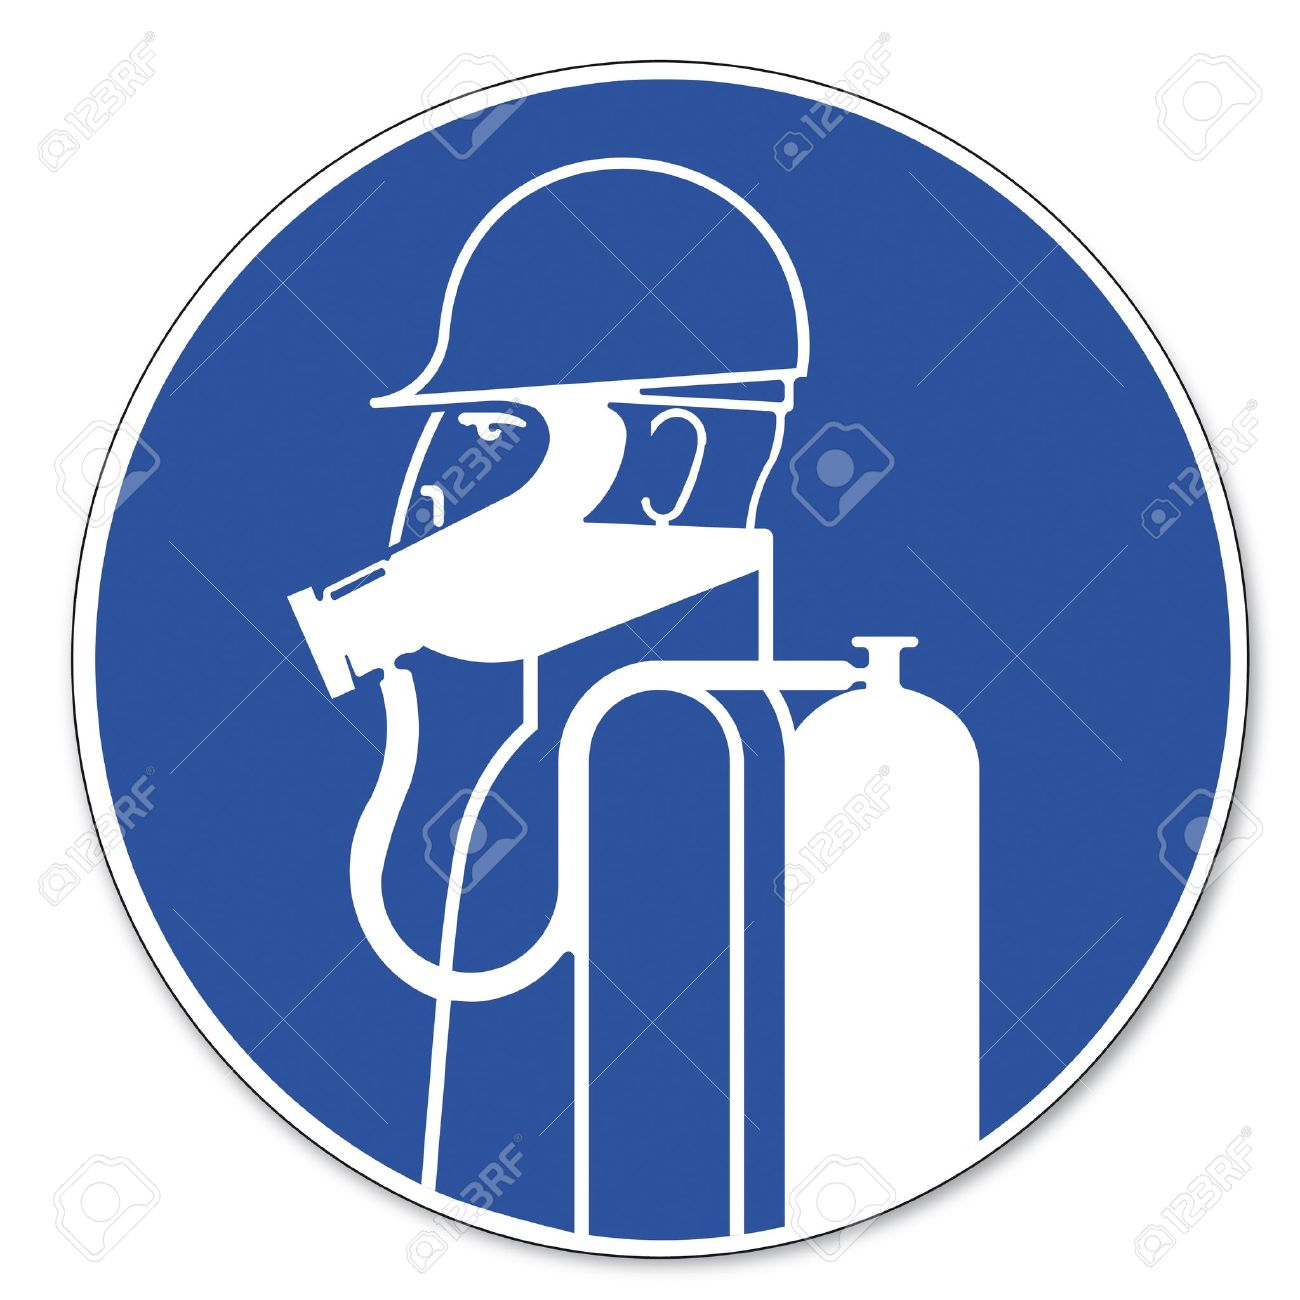 Commanded Sign Safety Sign Pictogram Occupational Safety Sign.